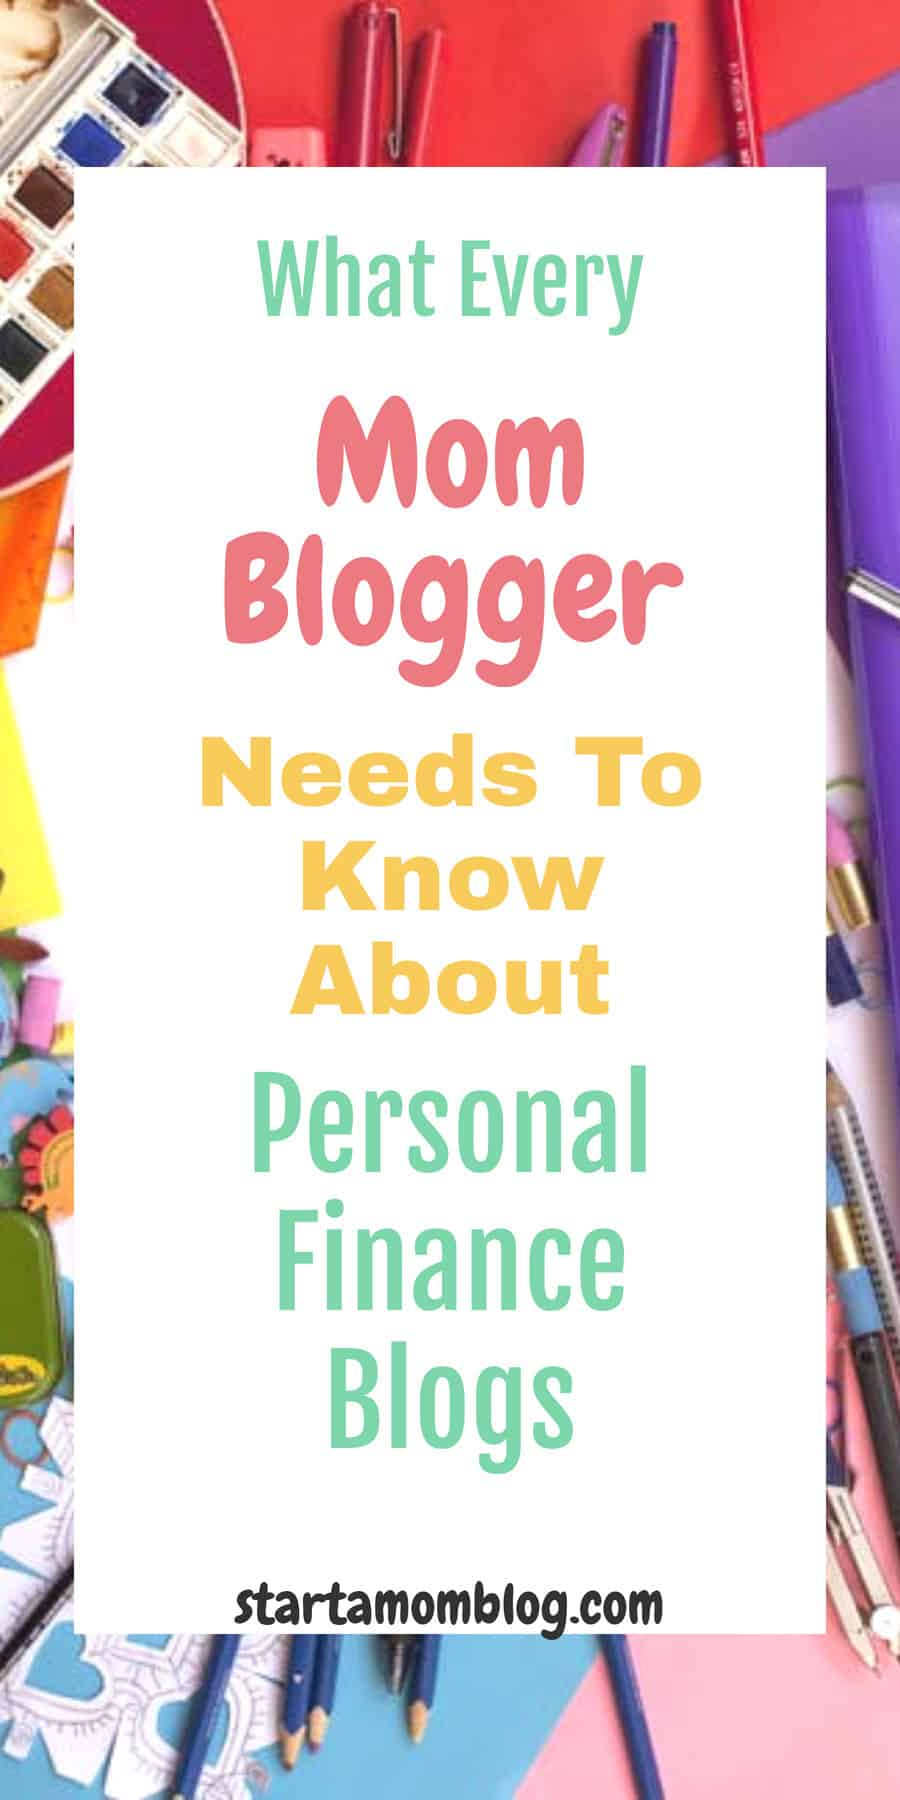 Personal finance blogs what every mom blogger needs to know